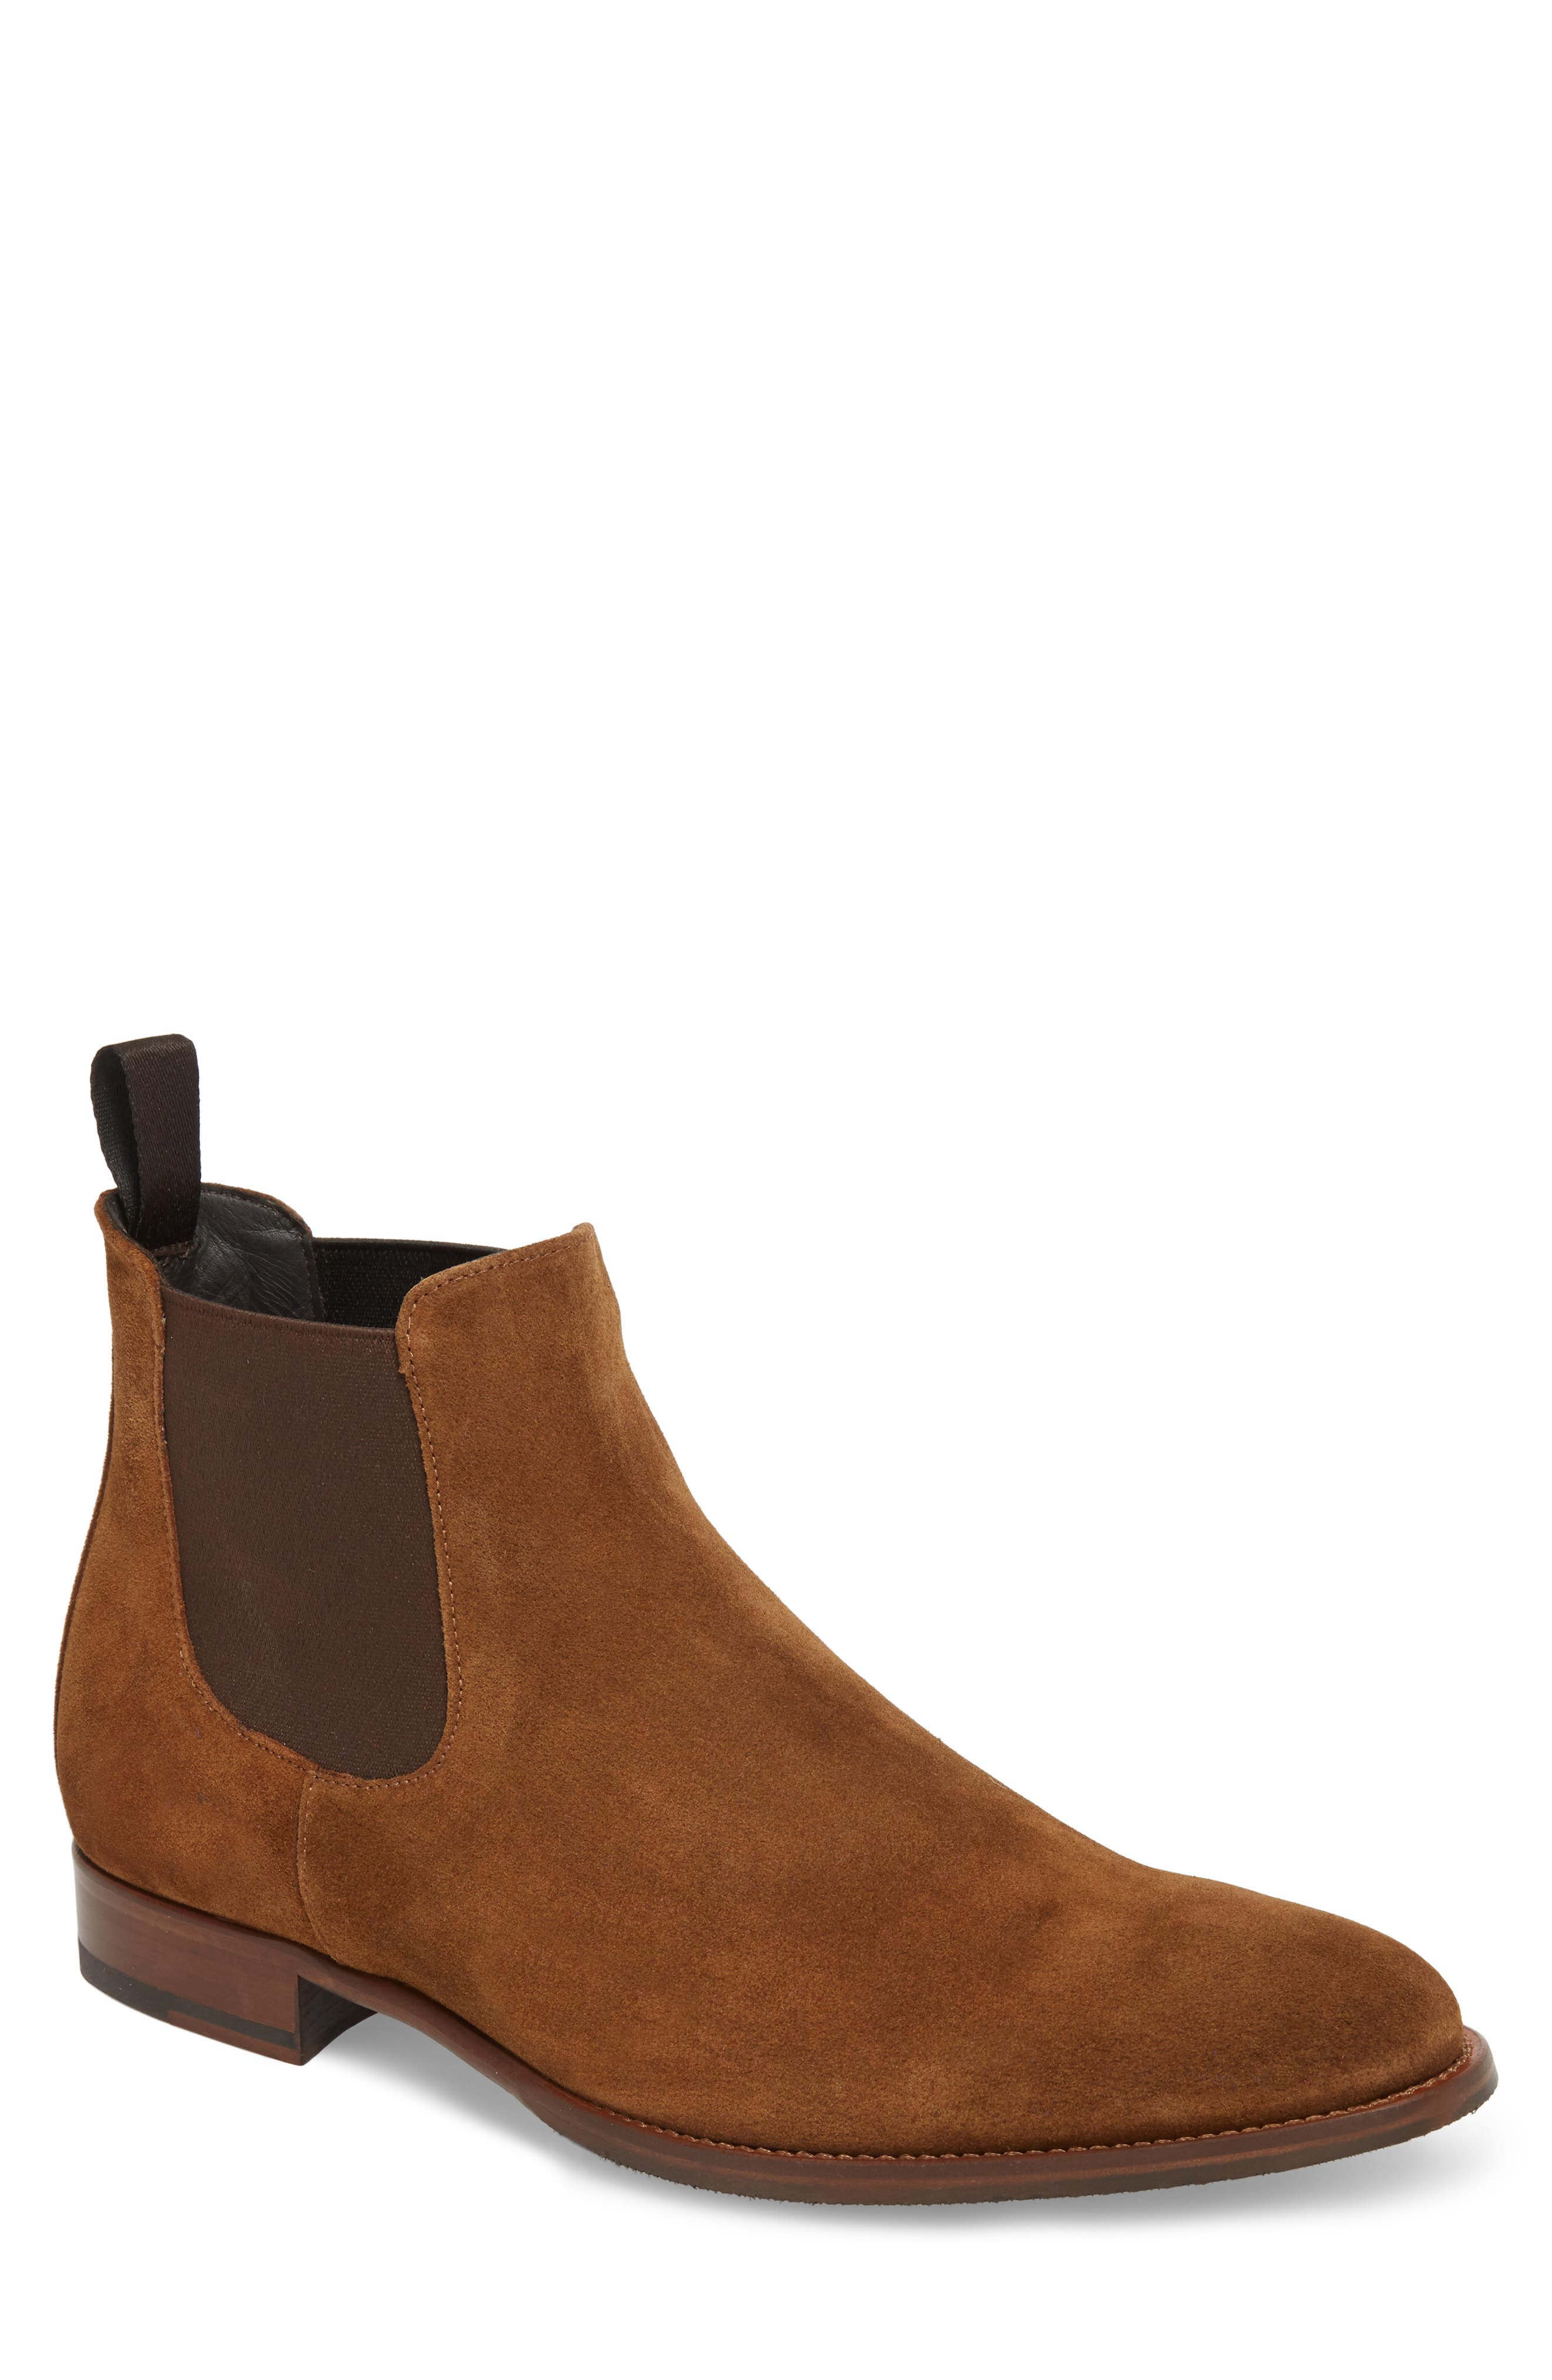 Shelby Mid Chelsea Boot,                             Main thumbnail 1, color,                             BROWN LEATHER